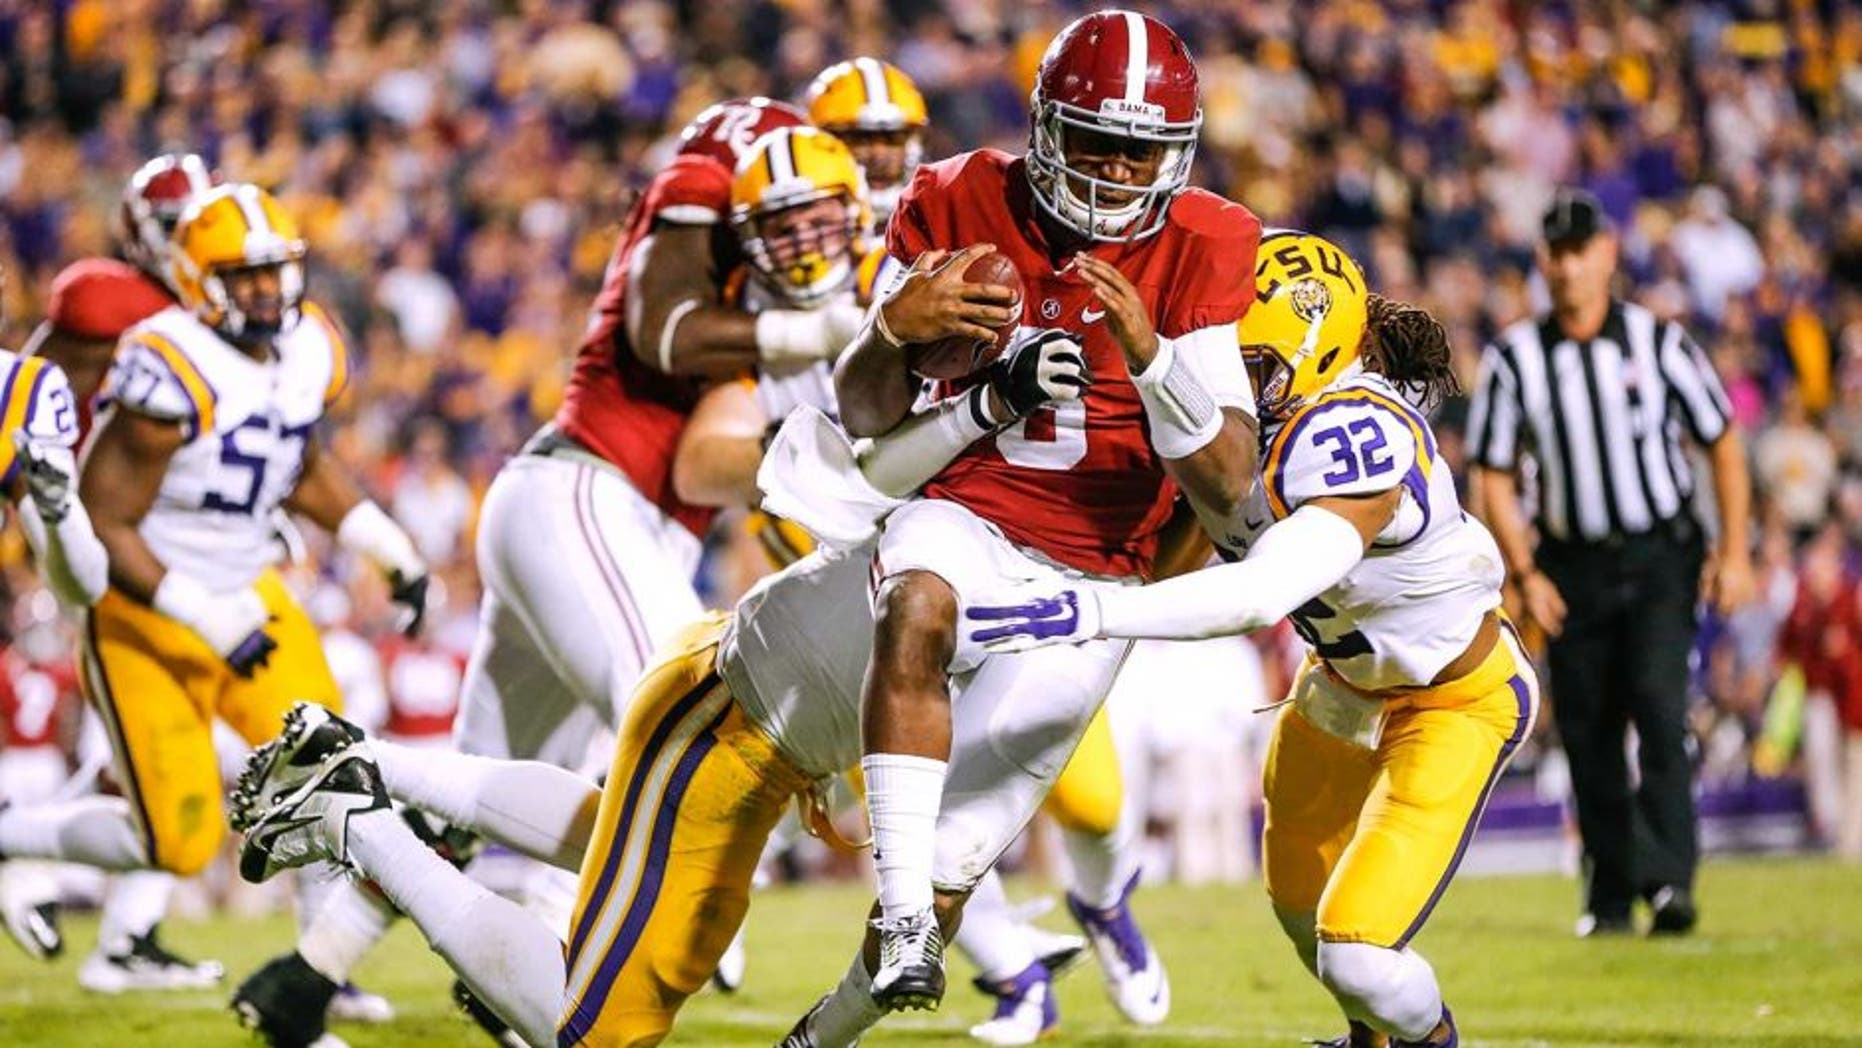 Nov 8, 2014; Baton Rouge, LA, USA; Alabama Crimson Tide quarterback Blake Sims (6) is tackled by LSU Tigers defensive end Jermauria Rasco (59) during the fourth quarter of a game at Tiger Stadium. Alabama defeated LSU 20-13. Mandatory Credit: Derick E. Hingle-USA TODAY Sports